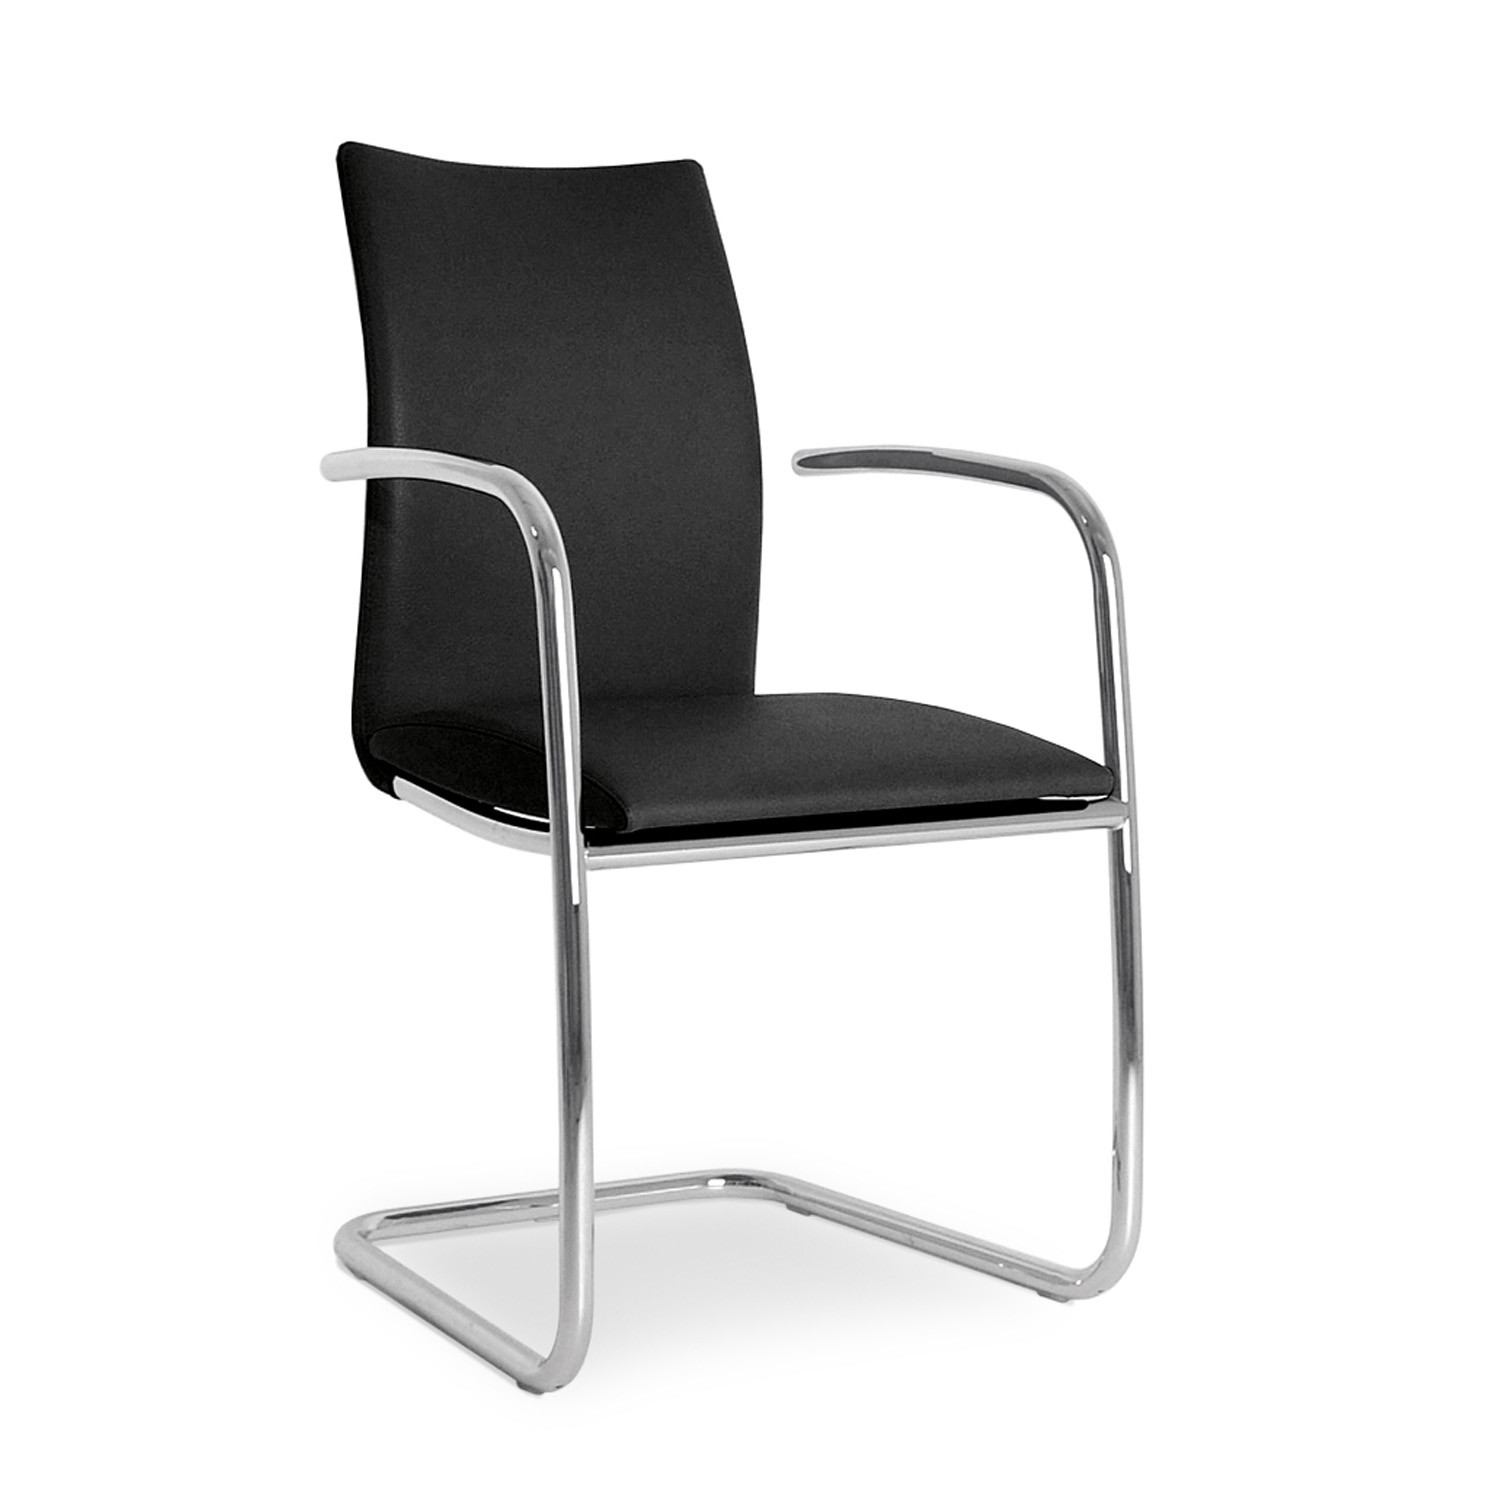 Swing Cantilever Chair